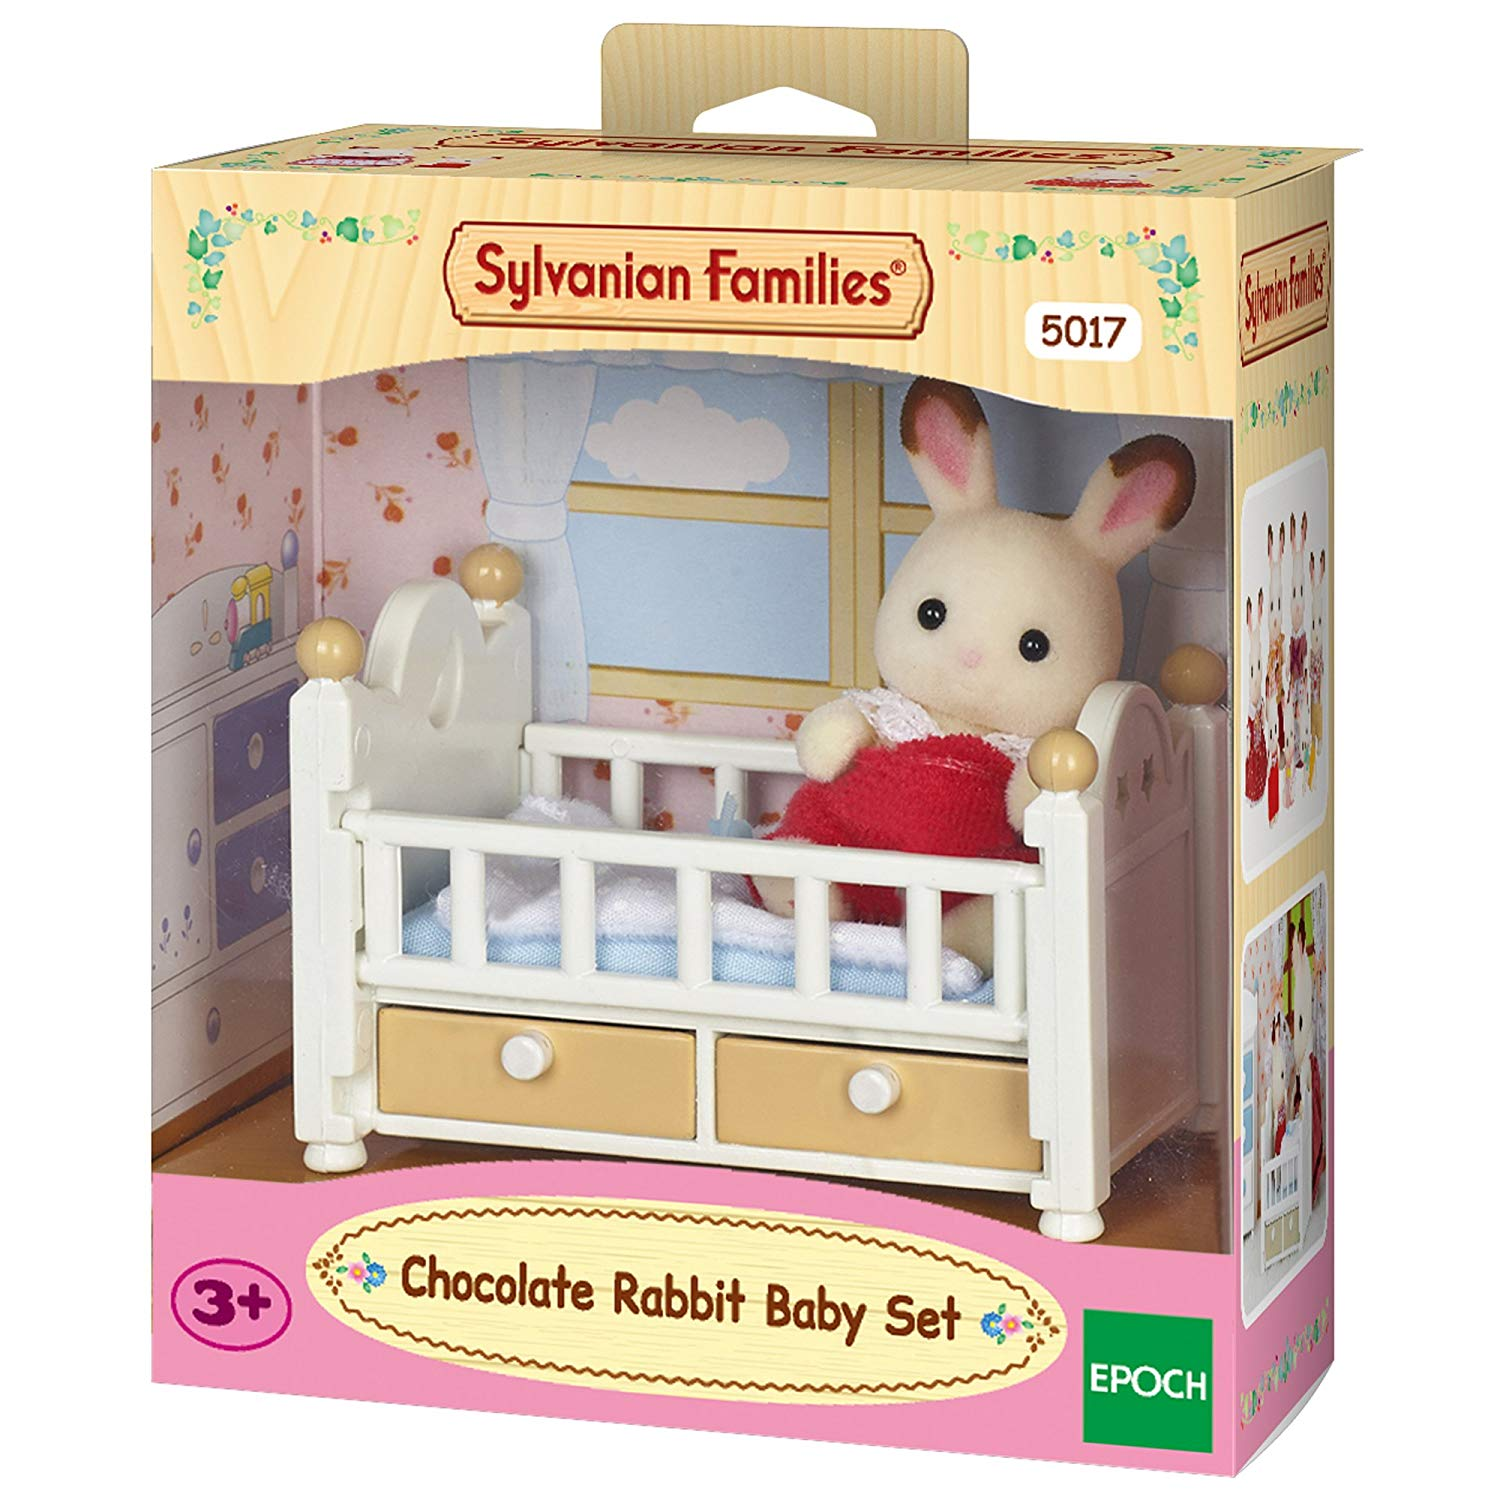 Sylvanian Families – Chocolate Rabbit Baby Set £6 Amazon Prime